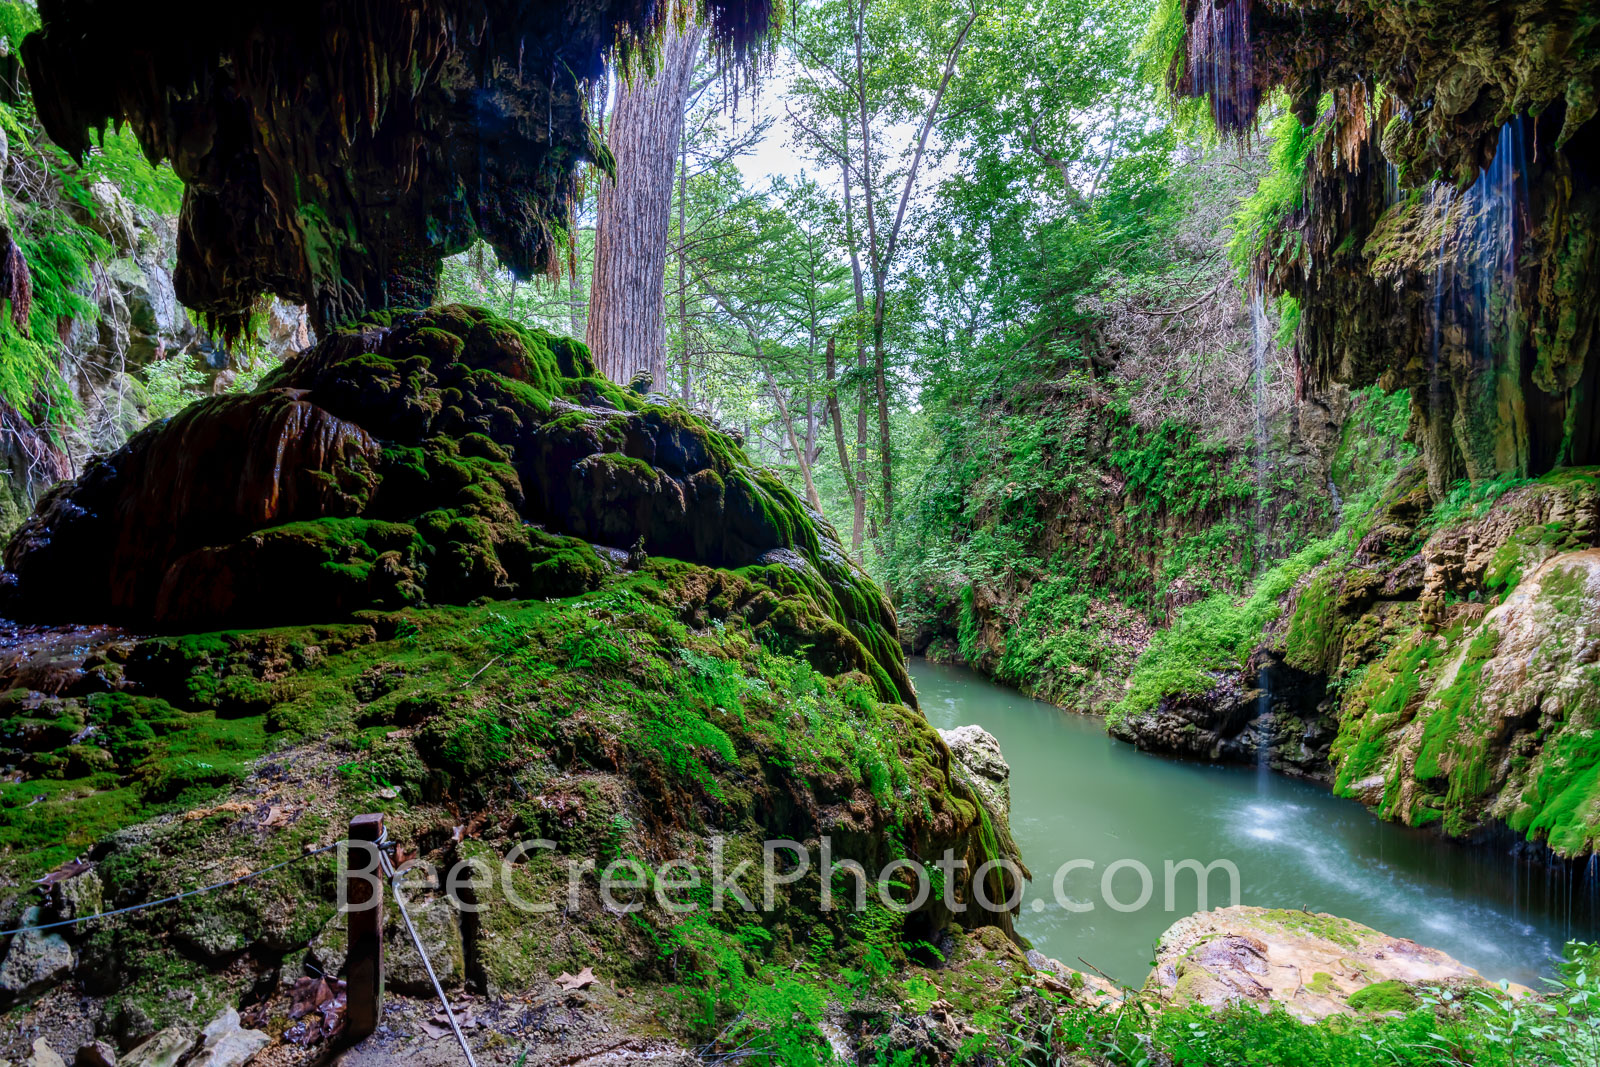 Texas Hill Country Grotto - From behind the grotto you can see what seems to be a tropical rain forest yet it is located in the...